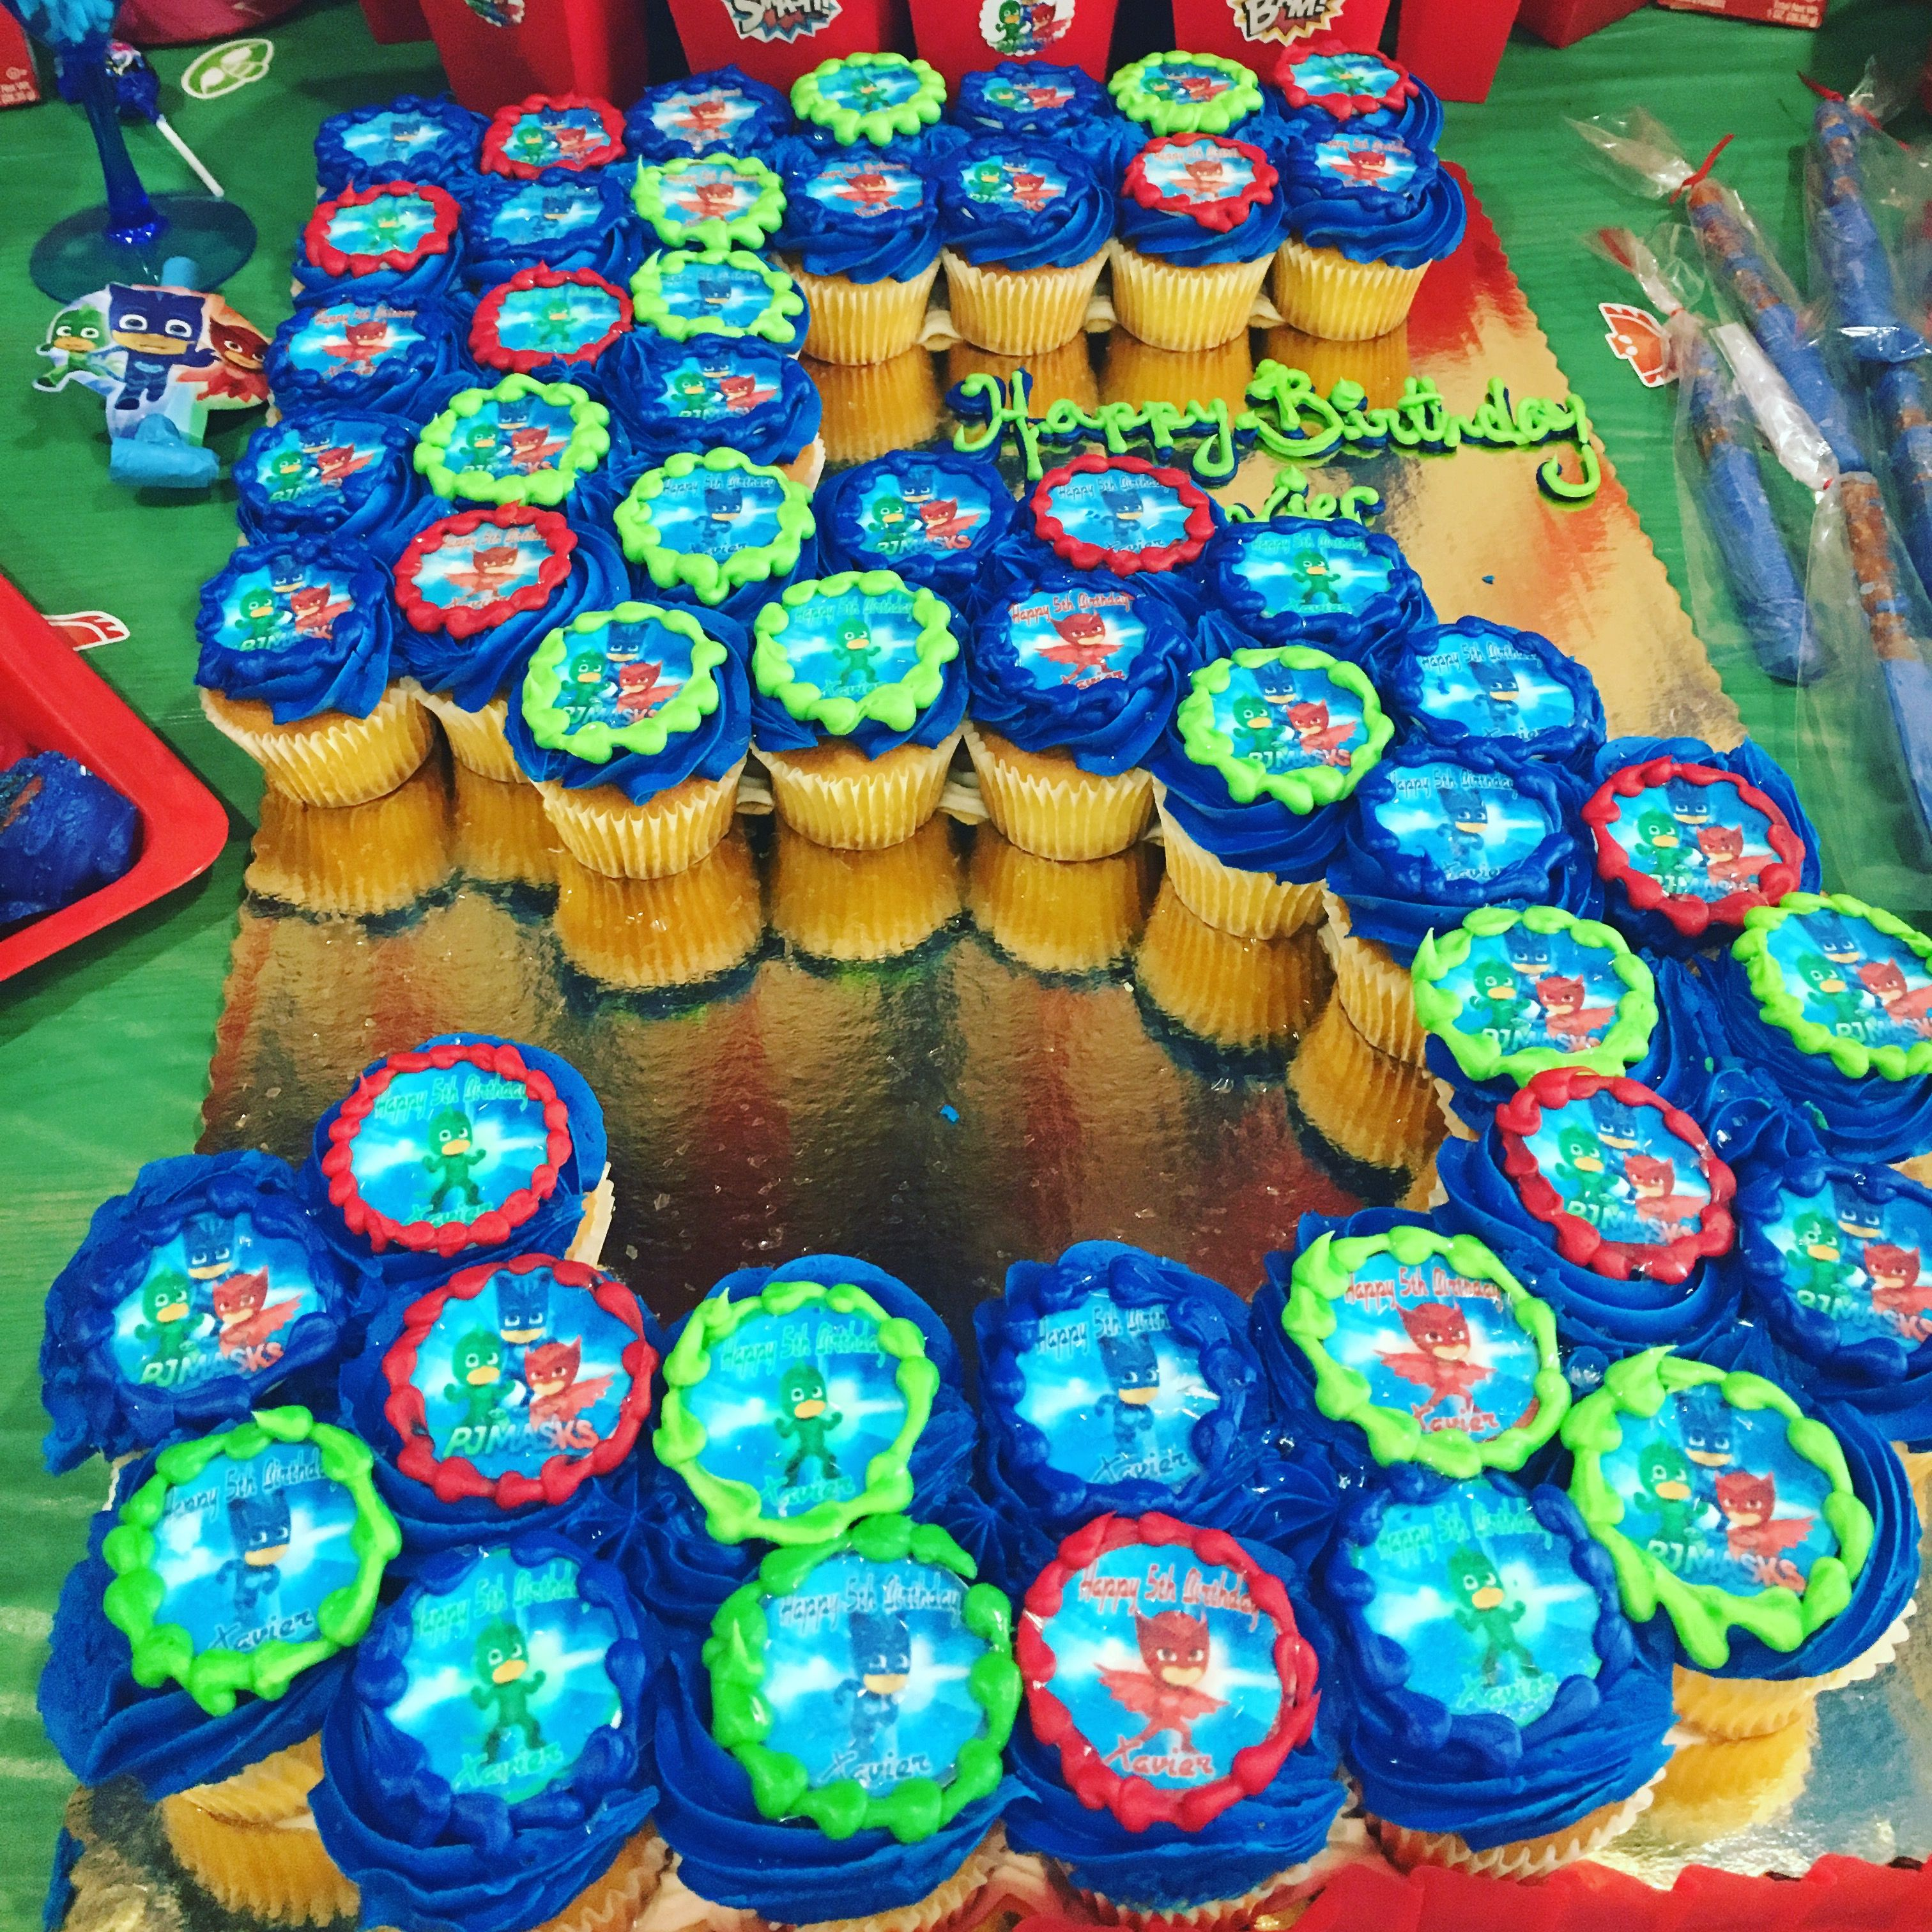 Themed Pj Masks Cupcakes With Images Pj Masks Birthday Party